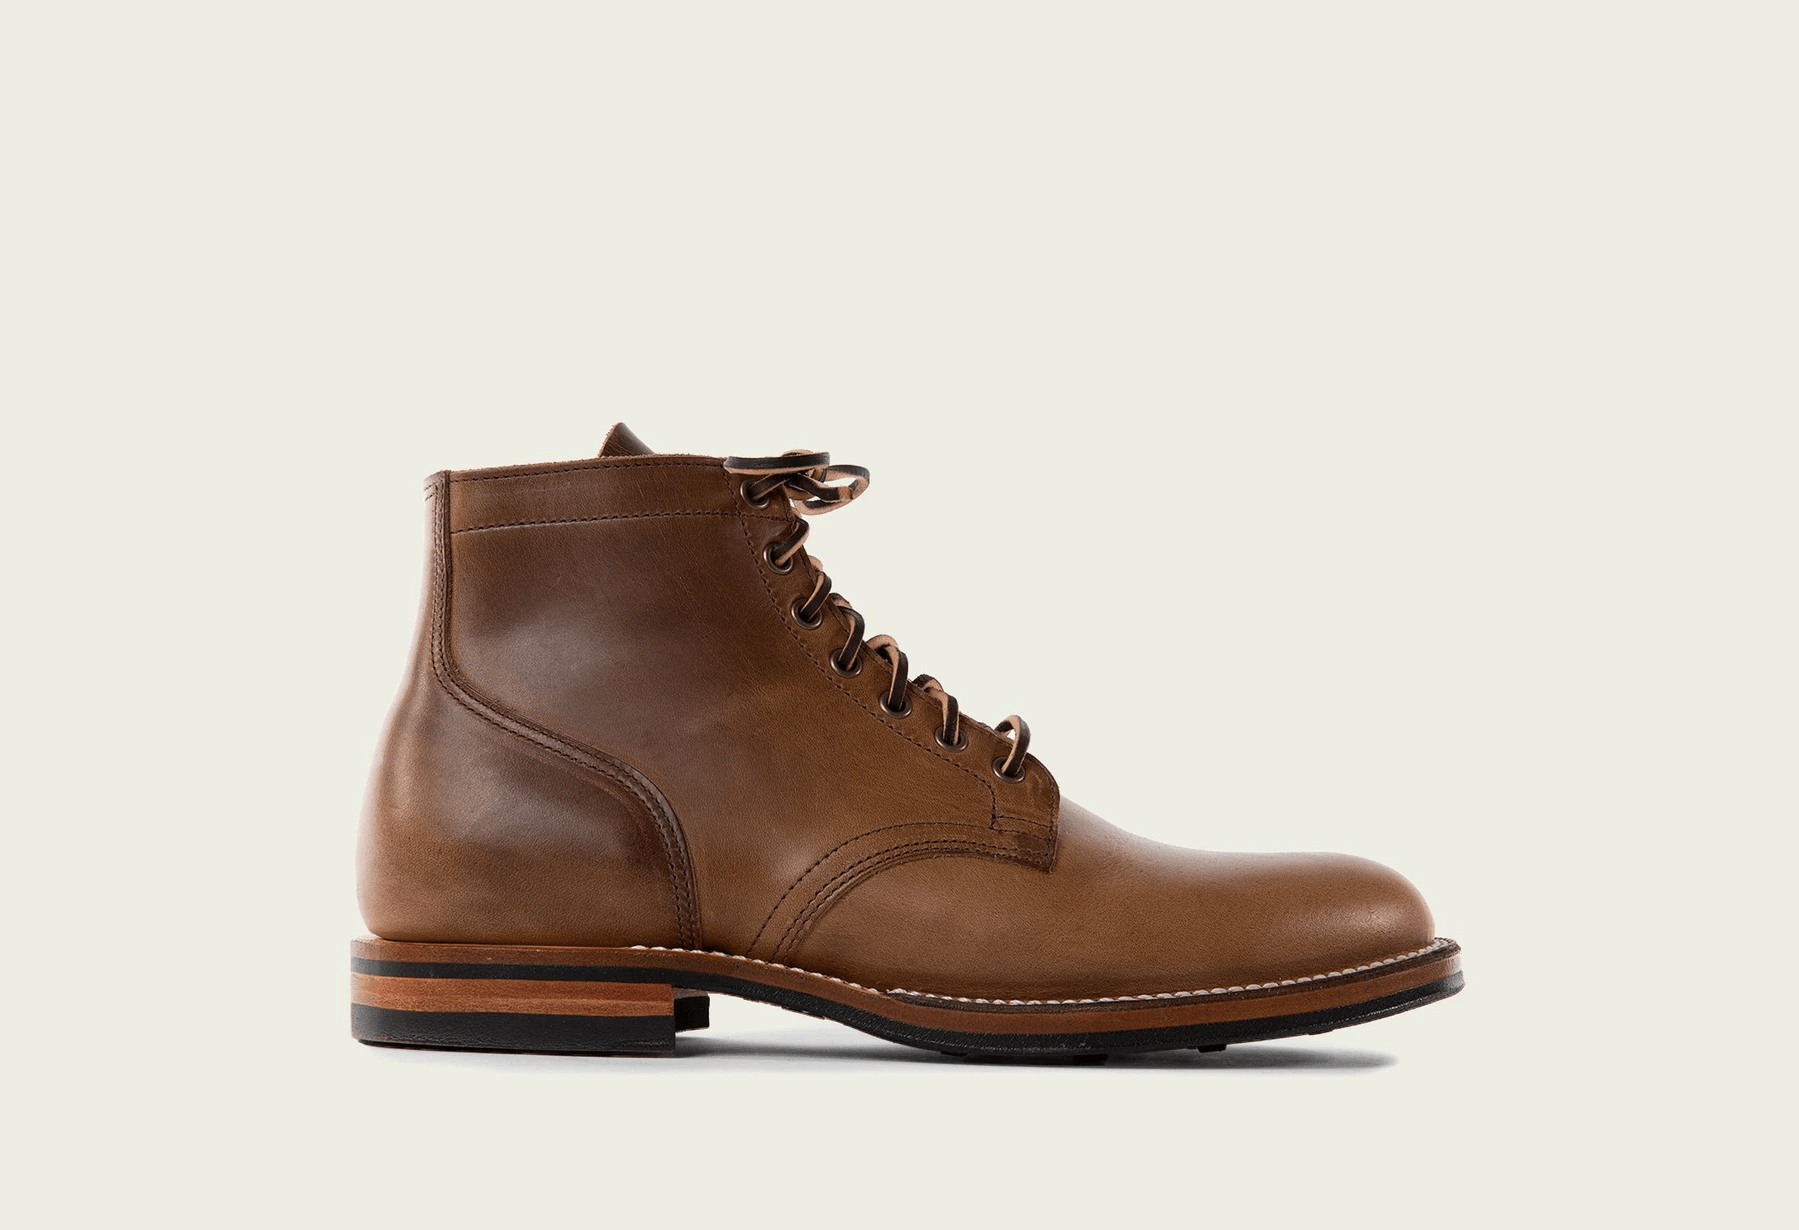 Viberg Service Boots in Natural Chromexcel